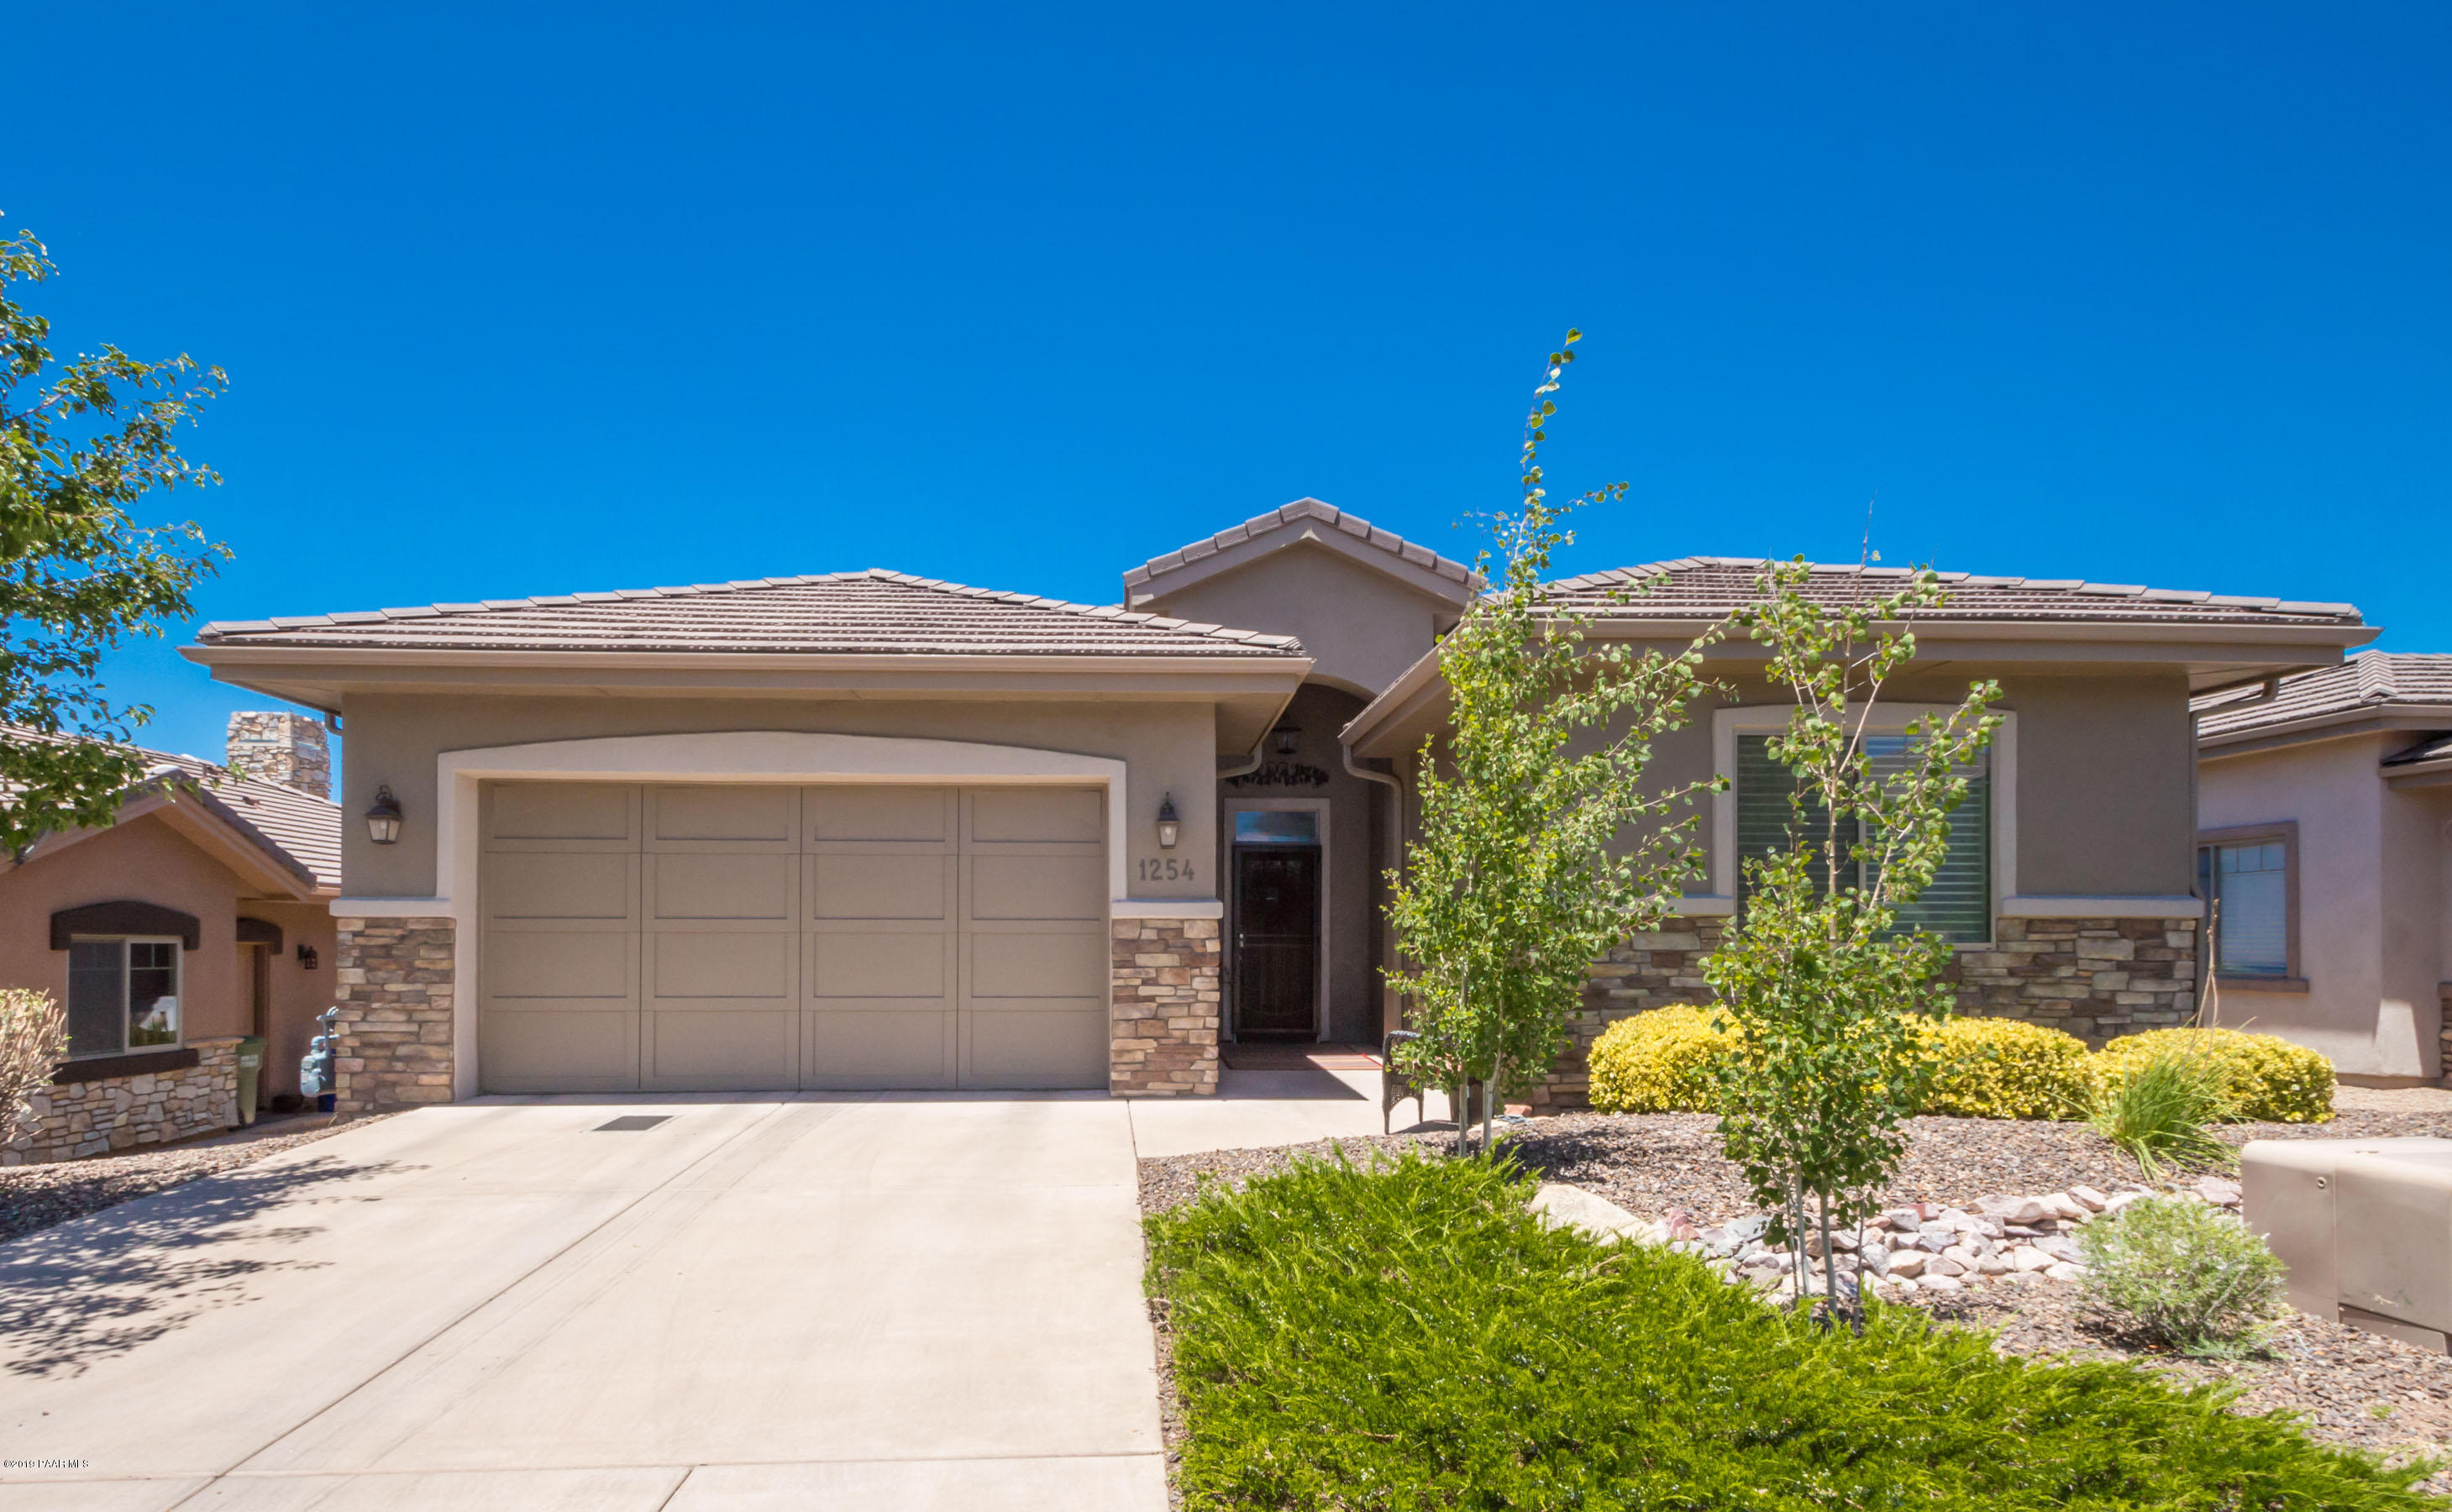 Photo of 1254 Pebble Springs, Prescott, AZ 86301